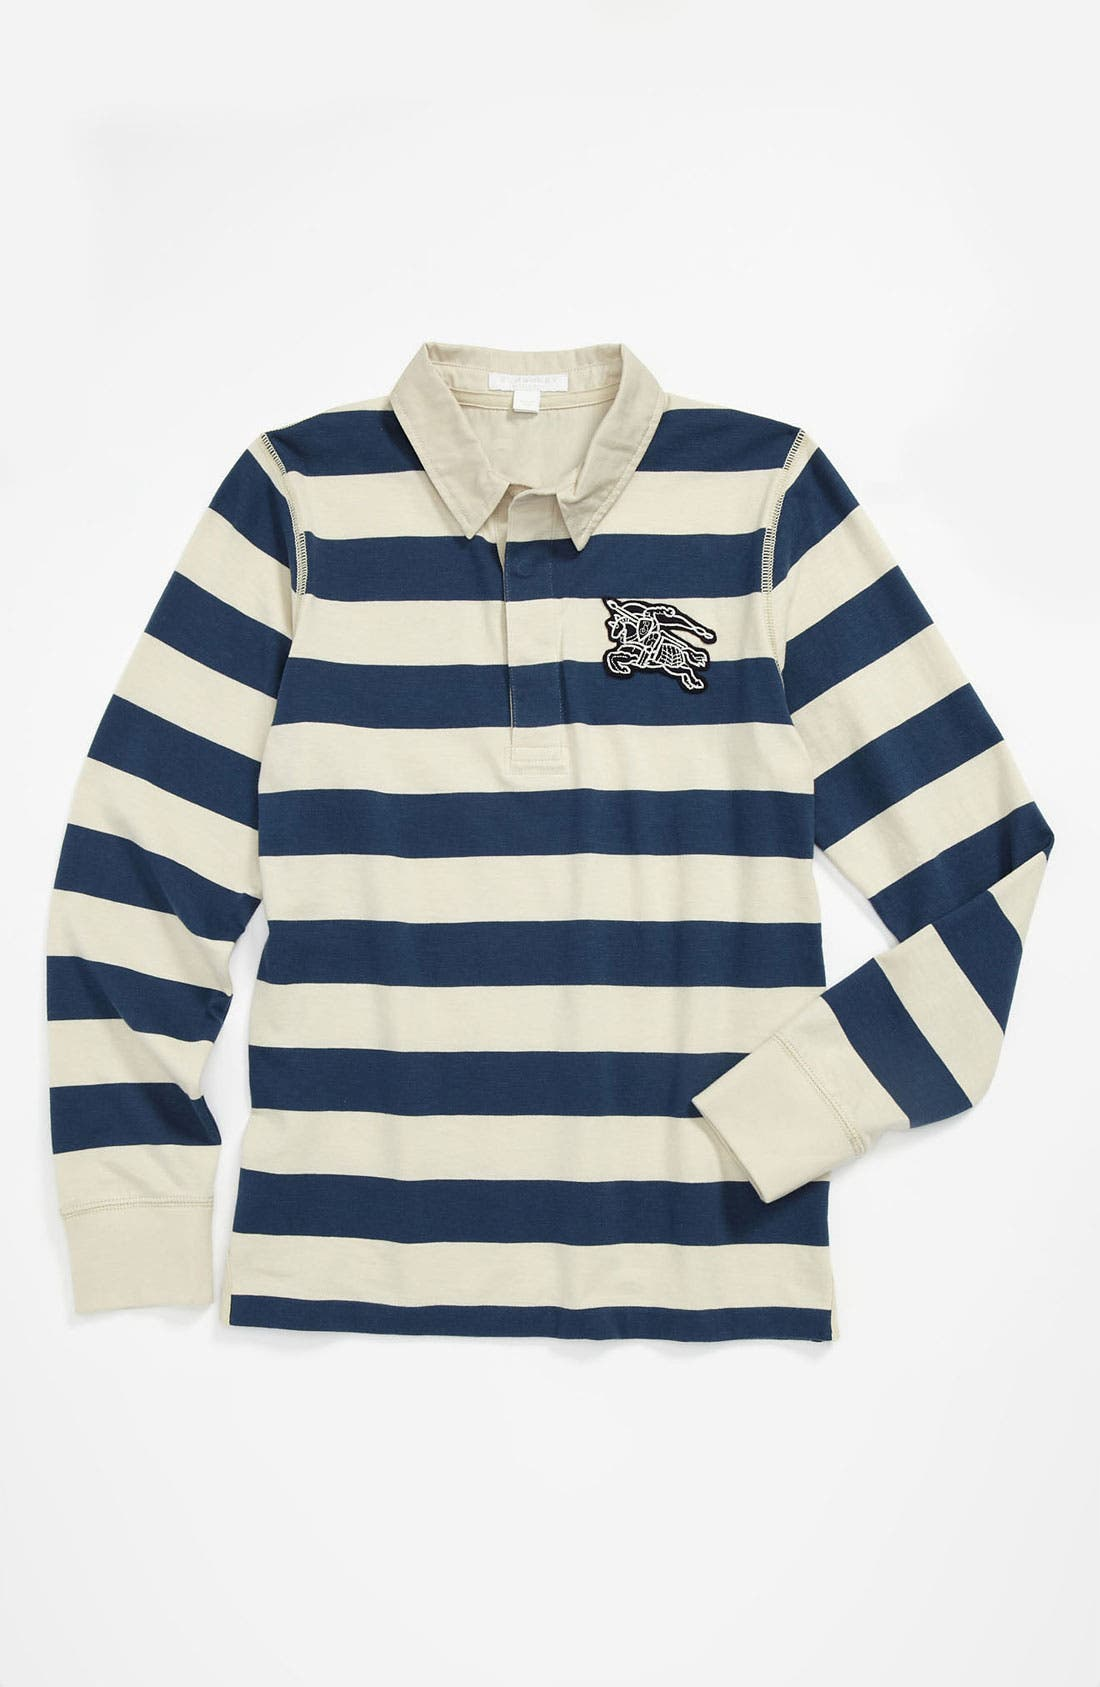 Main Image - Burberry 'Mini Beecroft' Stripe Polo Shirt (Little Boys & Big Boys)